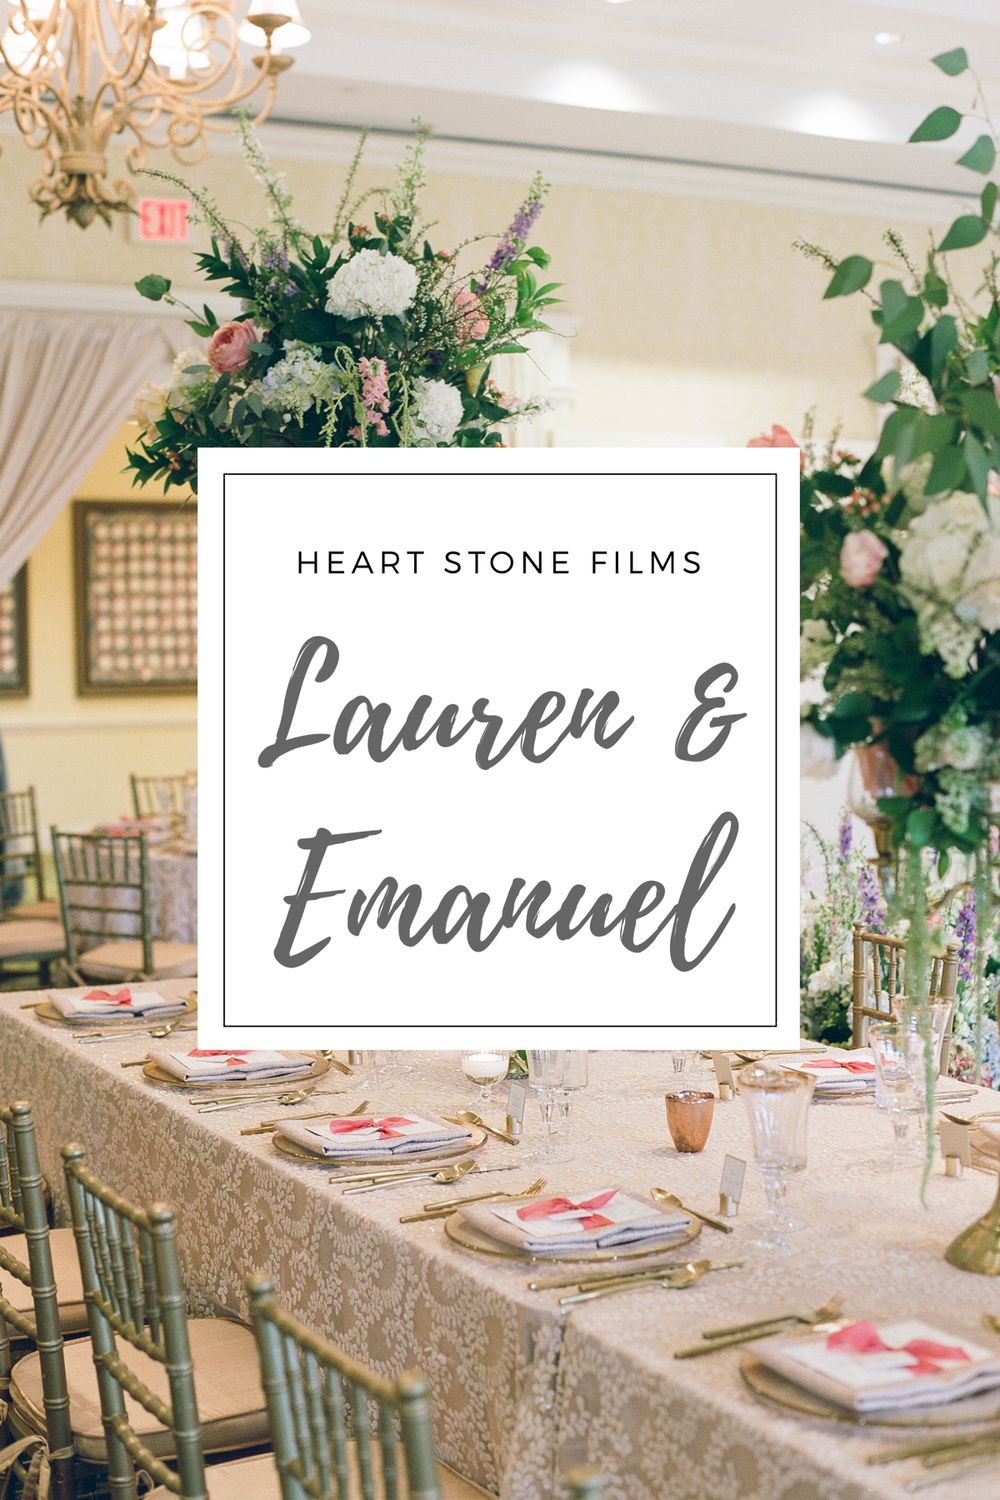 Click the image above to view Lauren and Emanuel's short highlight film by Heart Stone Films